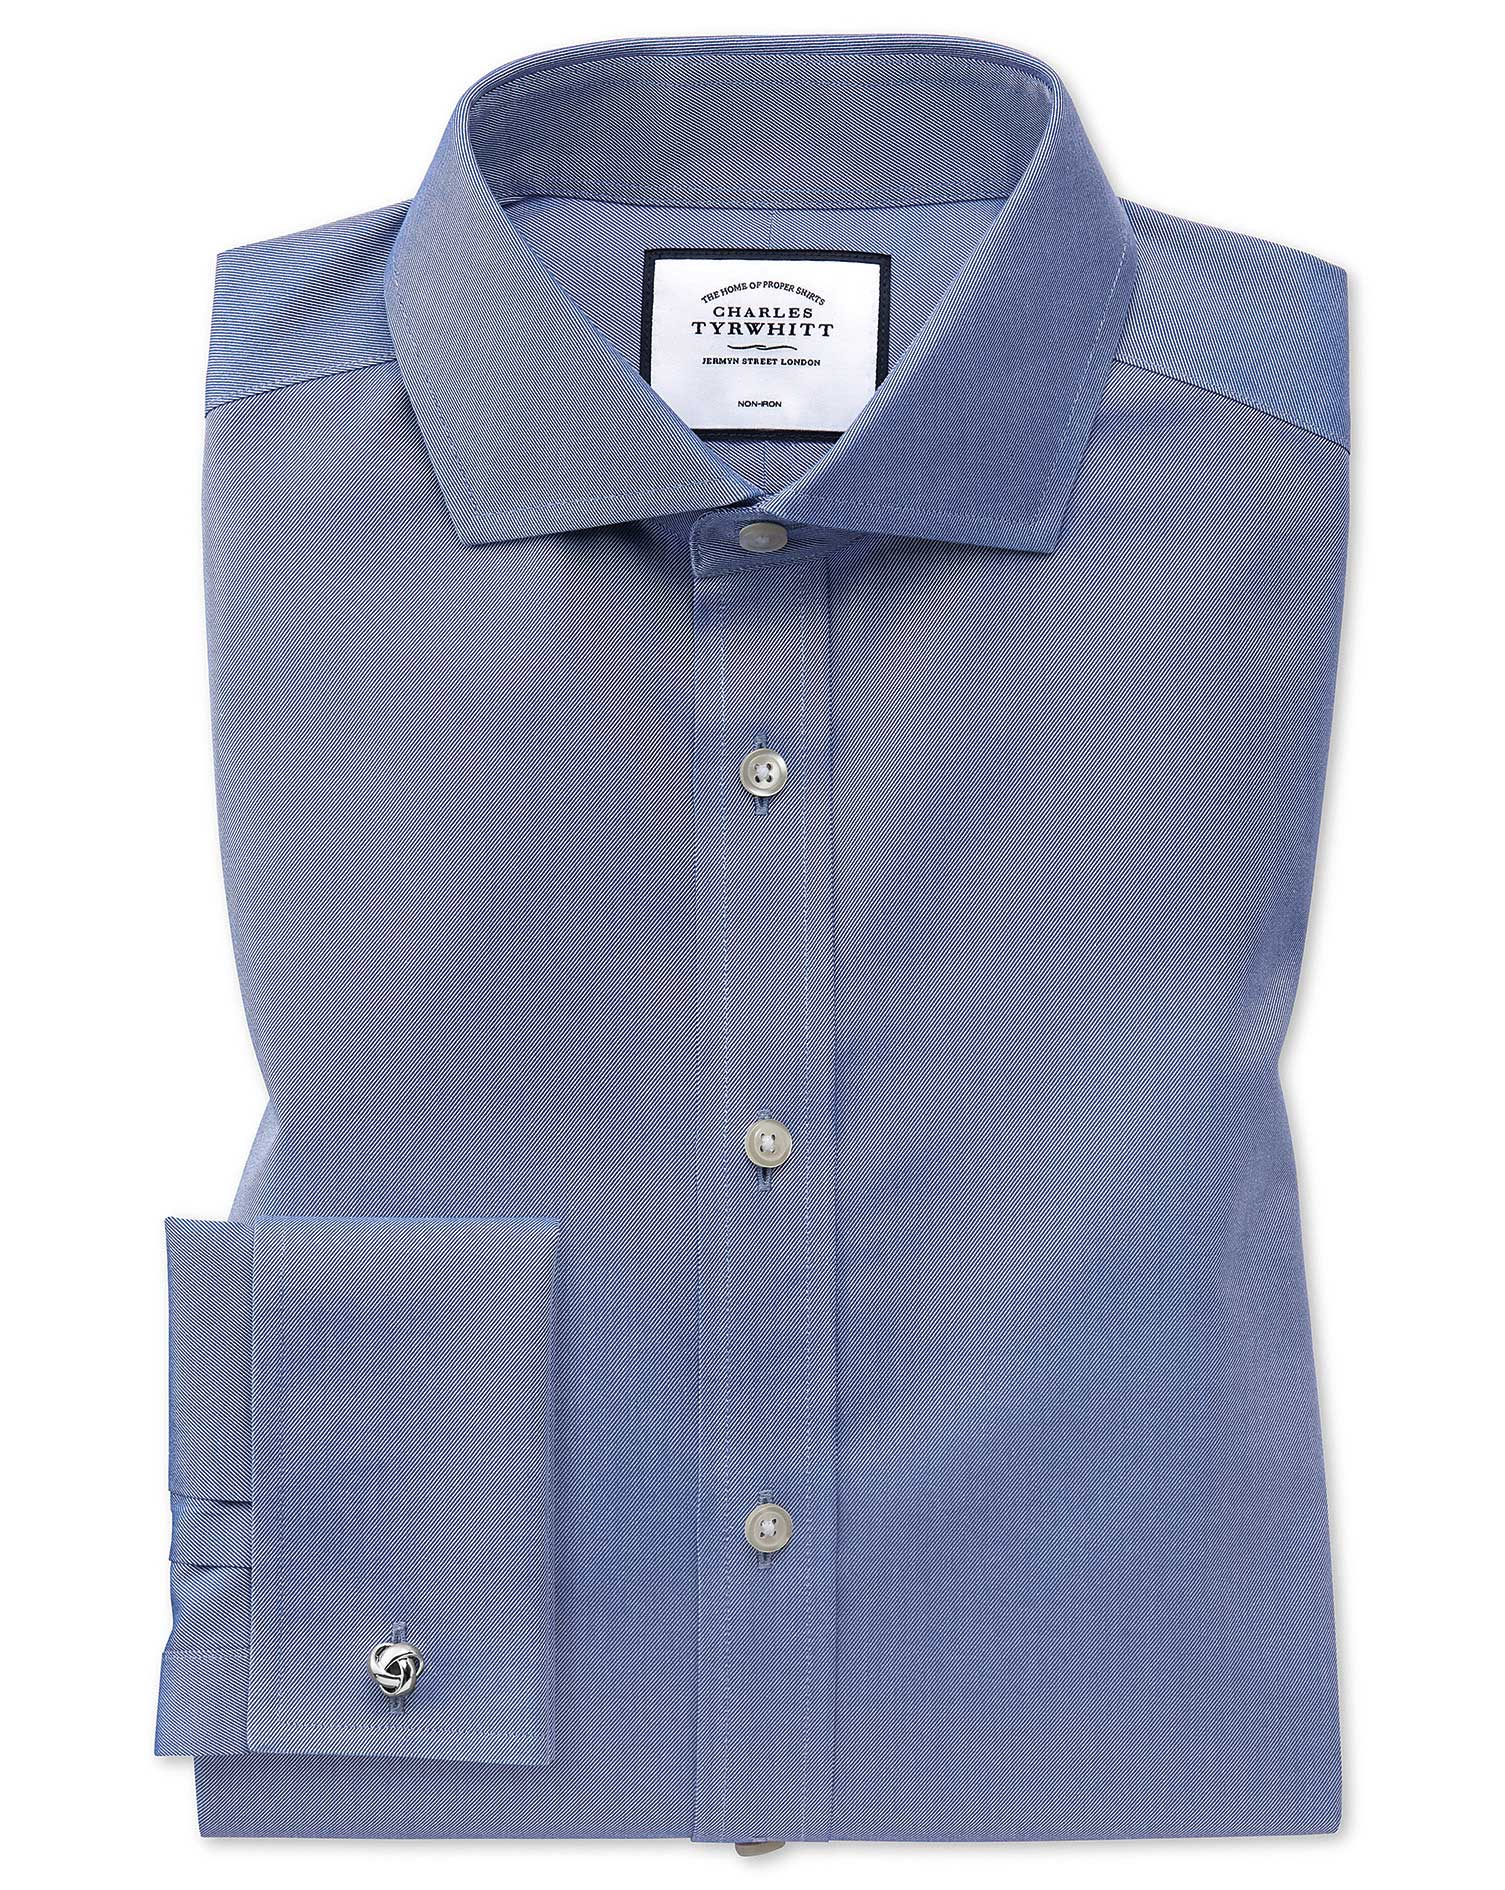 Slim Fit Cutaway Non-Iron Twill Mid Blue Cotton Formal Shirt Double Cuff Size 17/34 by Charles Tyrwh